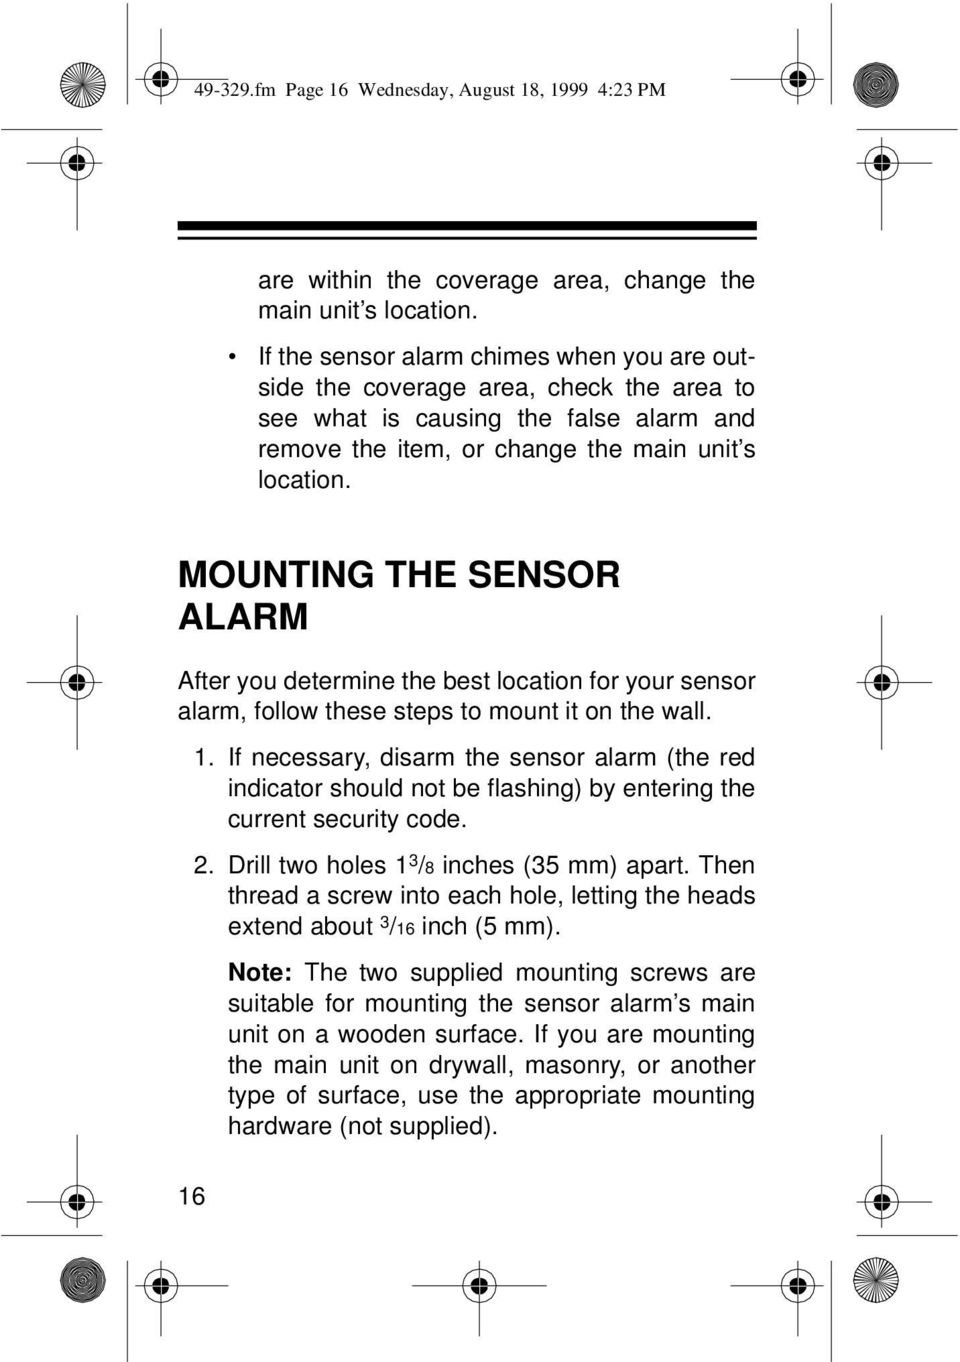 MOUNTING THE SENSOR ALARM After you determine the best location for your sensor alarm, follow these steps to mount it on the wall. 1.